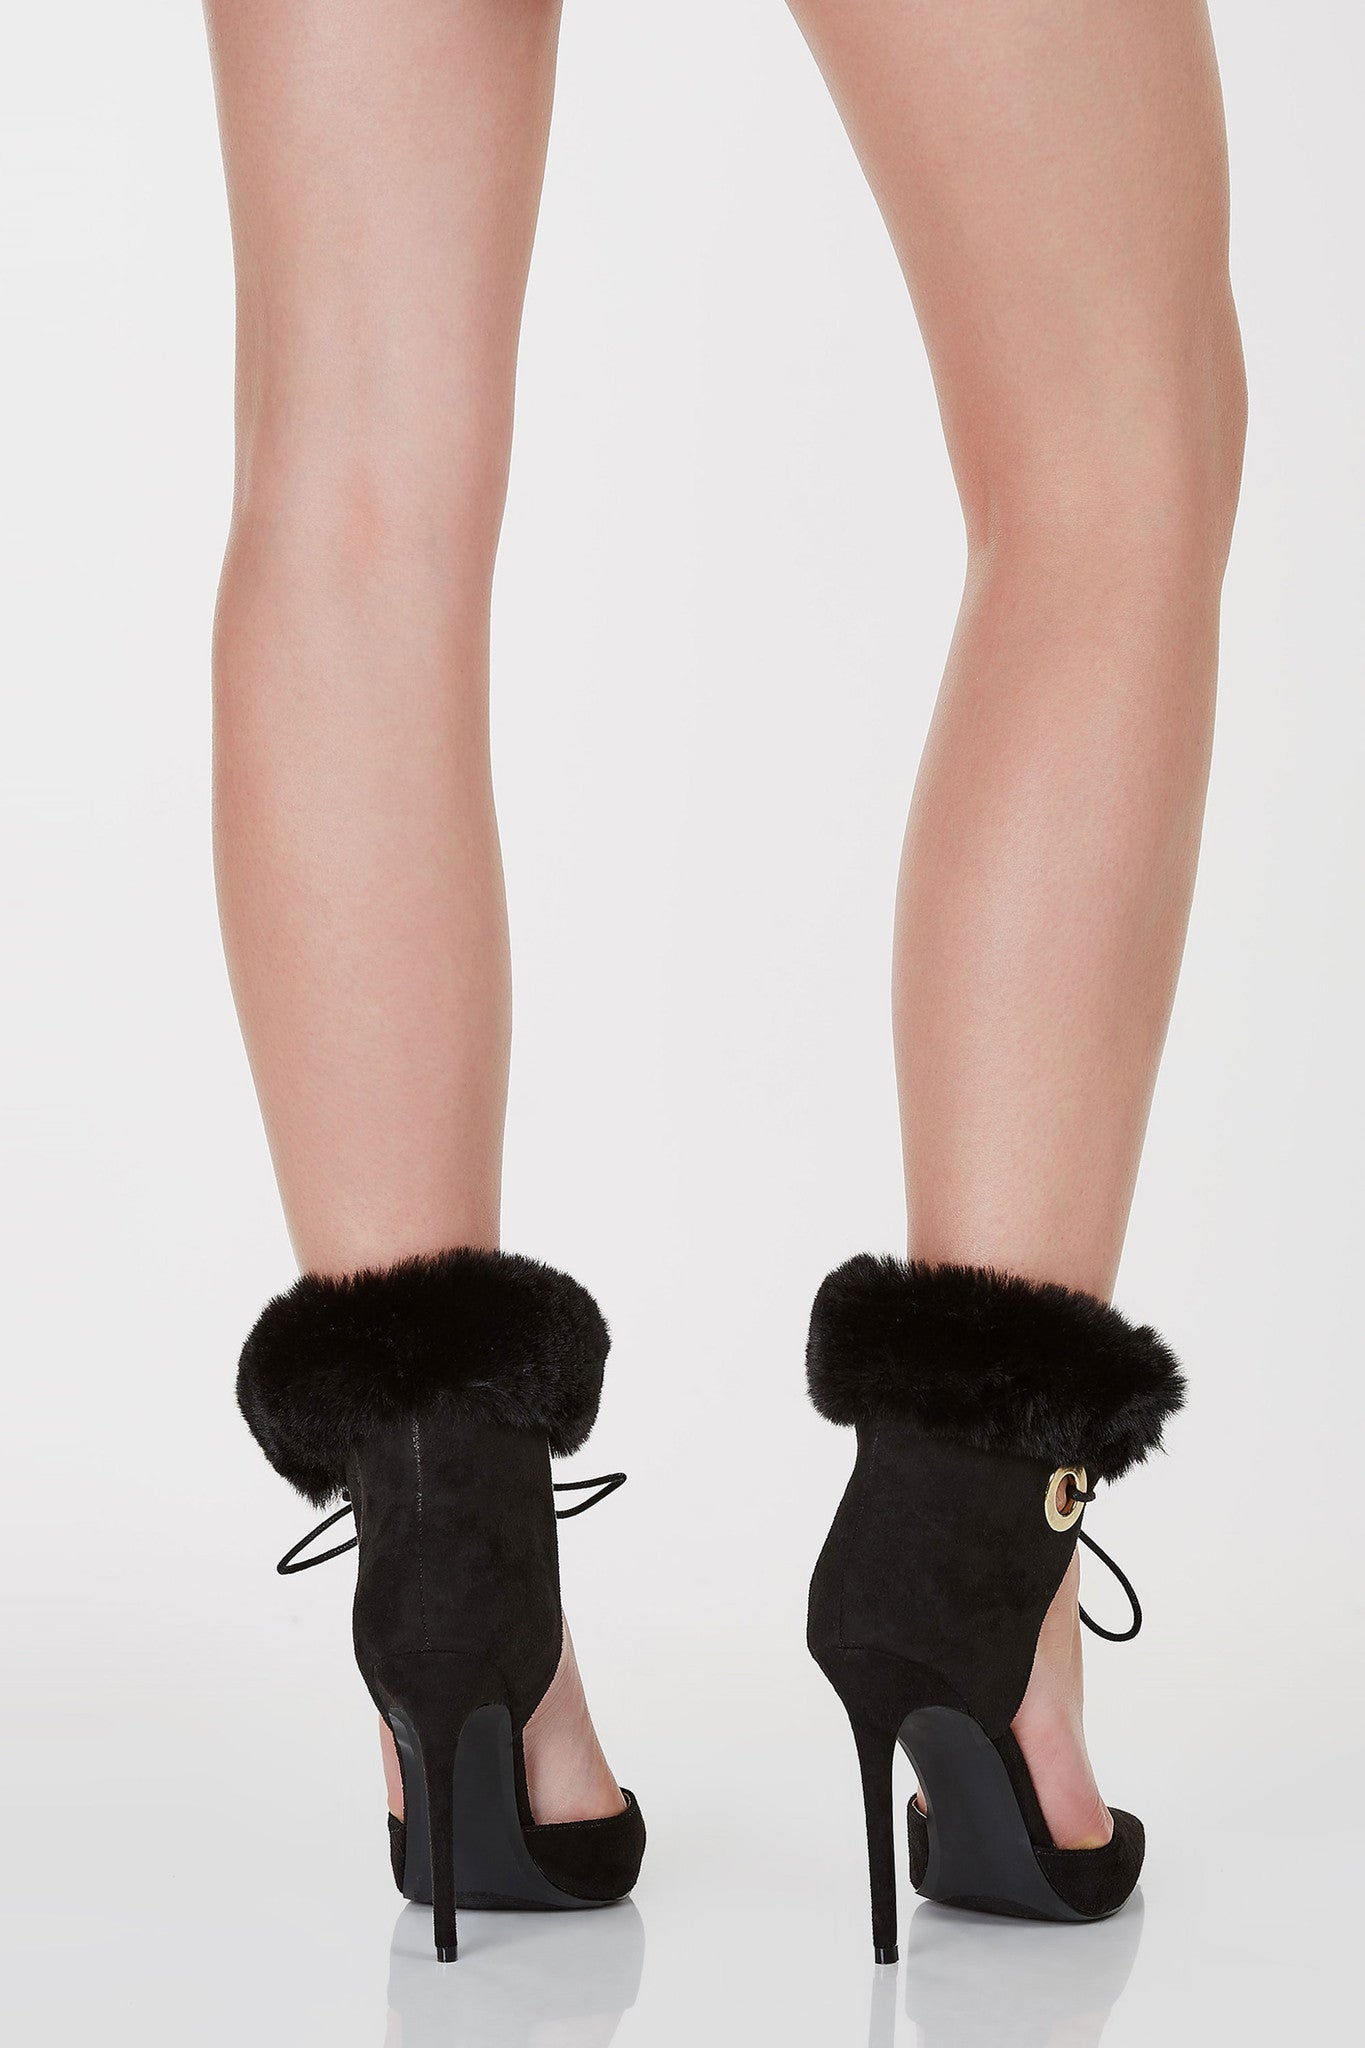 Closed pointed toe pumps with center cut out. Lace up closure with faux fur design at ankles.